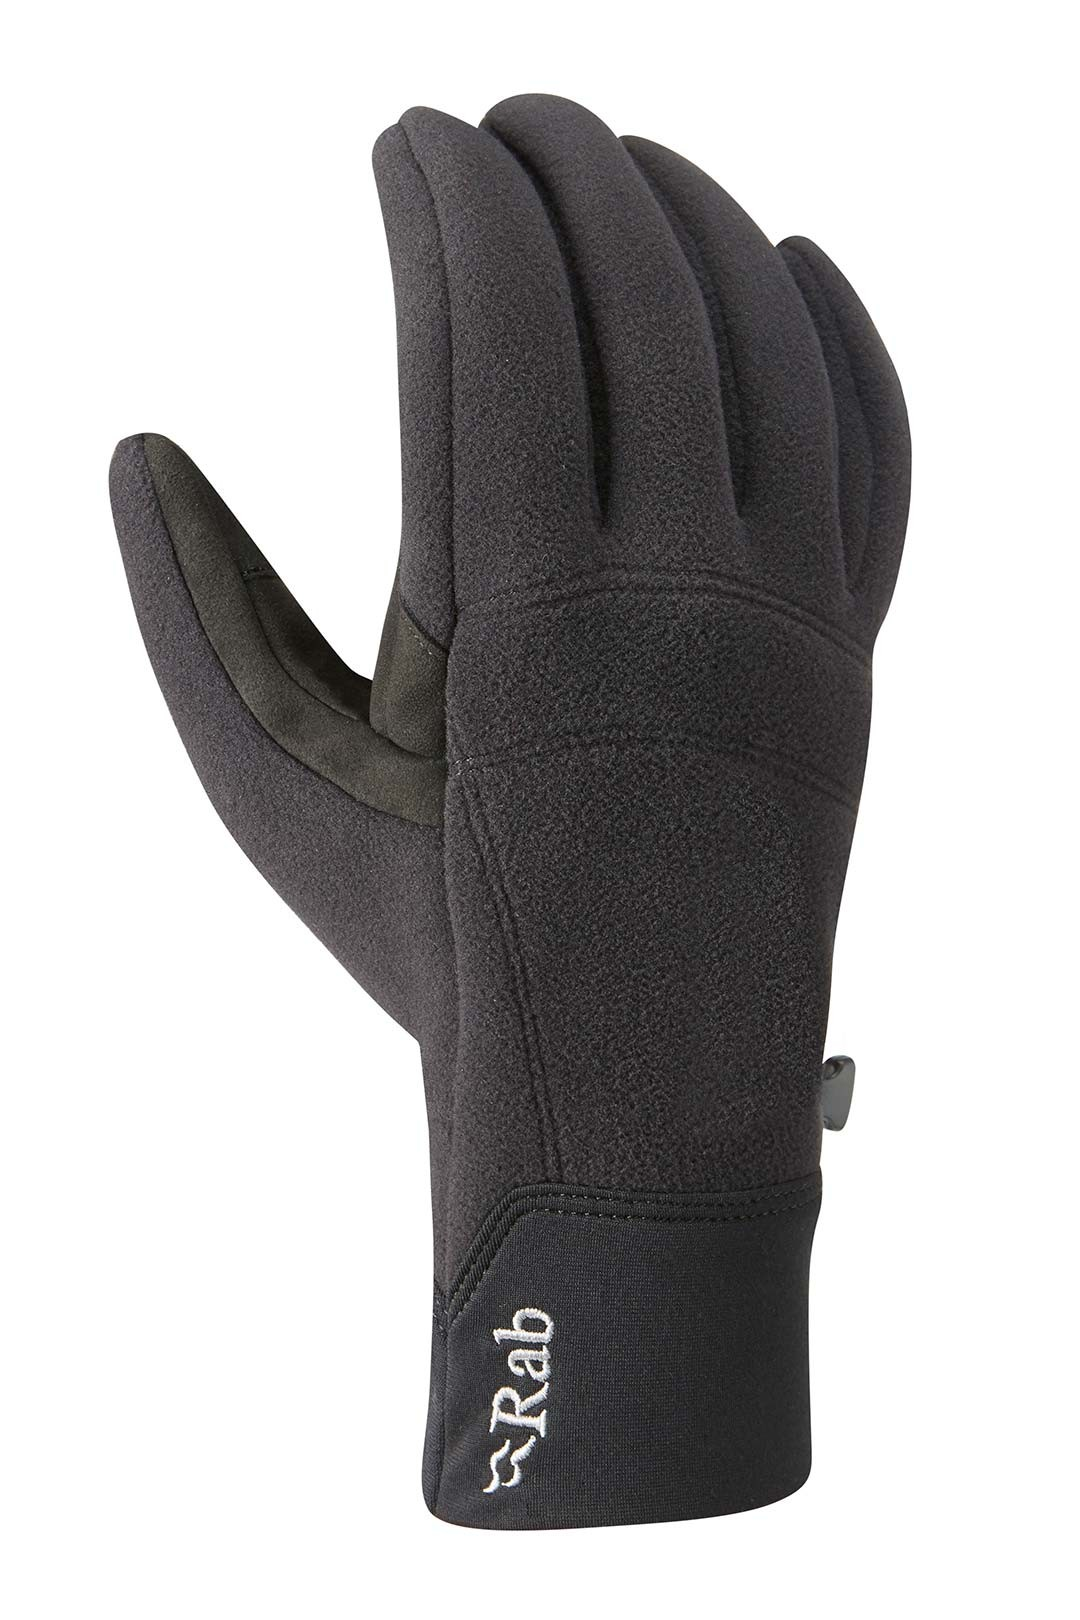 Rab Windbloc Glove - Black